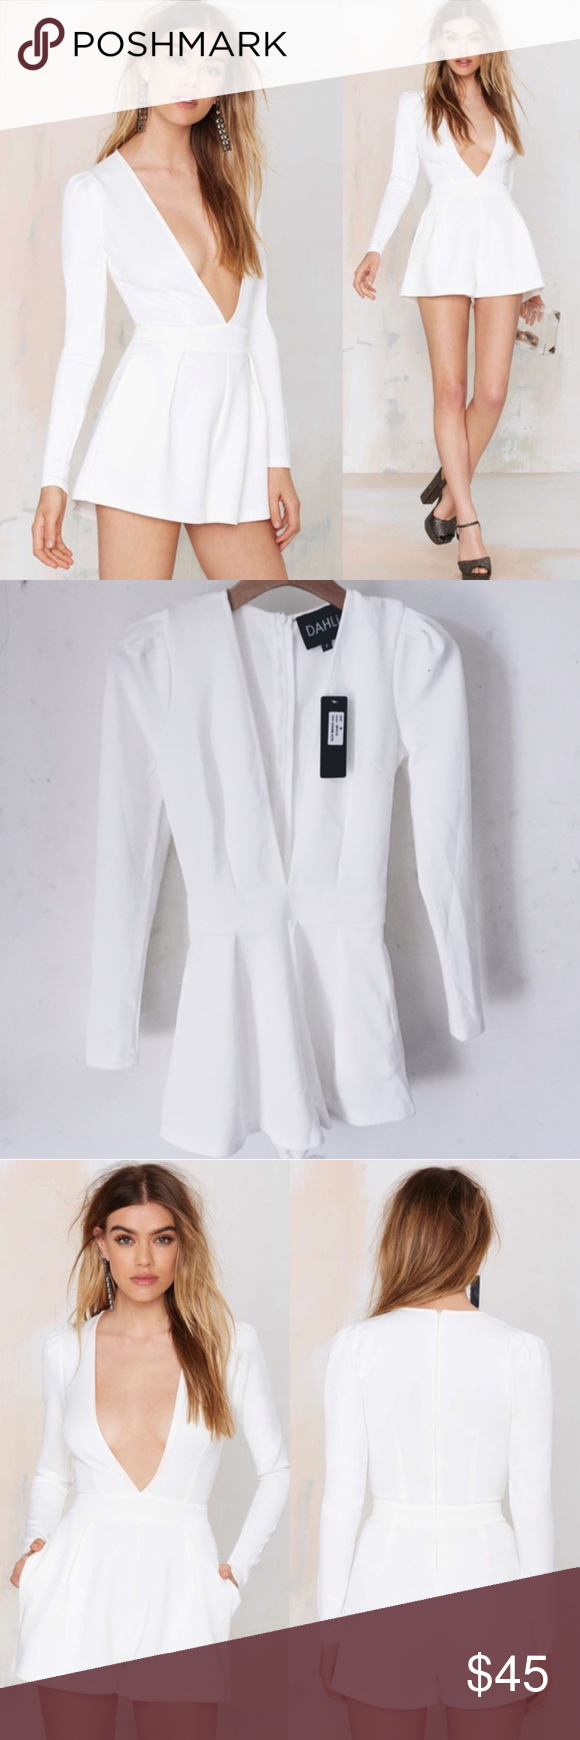 Nasty Gal Romper Brand New With Tags Super comfortable material. White romper from nasty gal, brand new with tags. Never worn. Nasty Gal Other